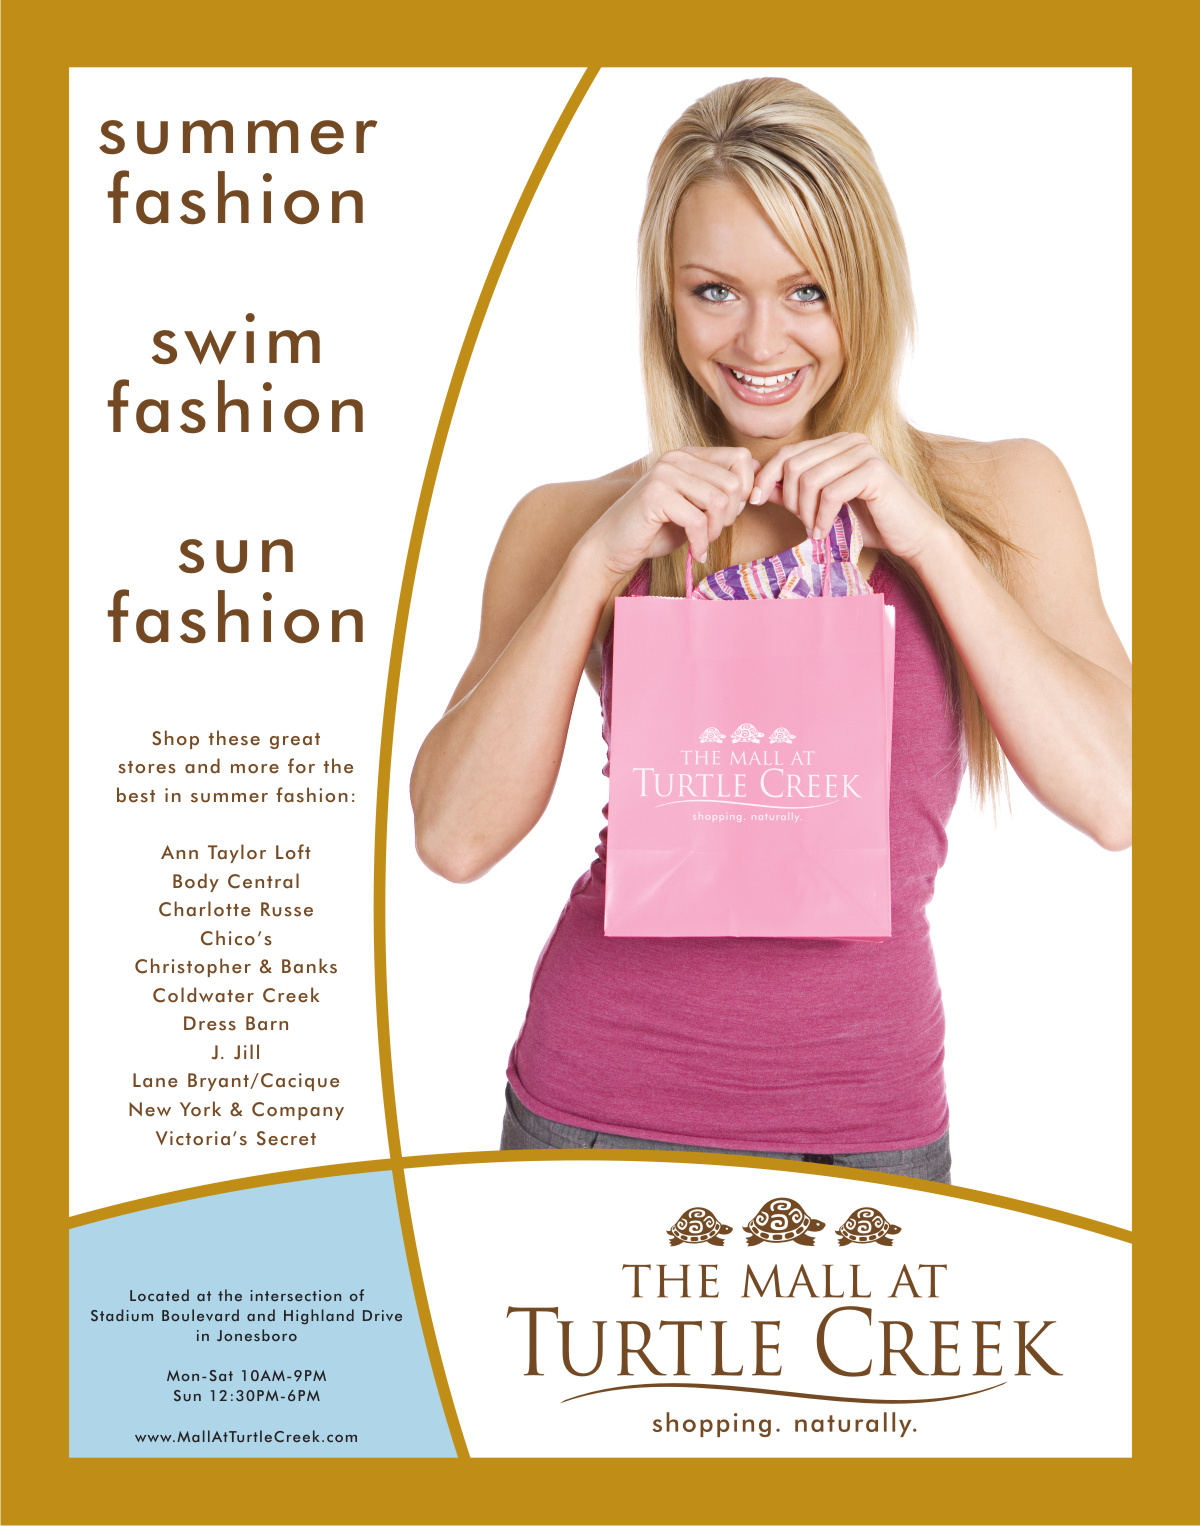 Turtle Creek Summer Fashion Ad  | Graphic Design by Cybergraph